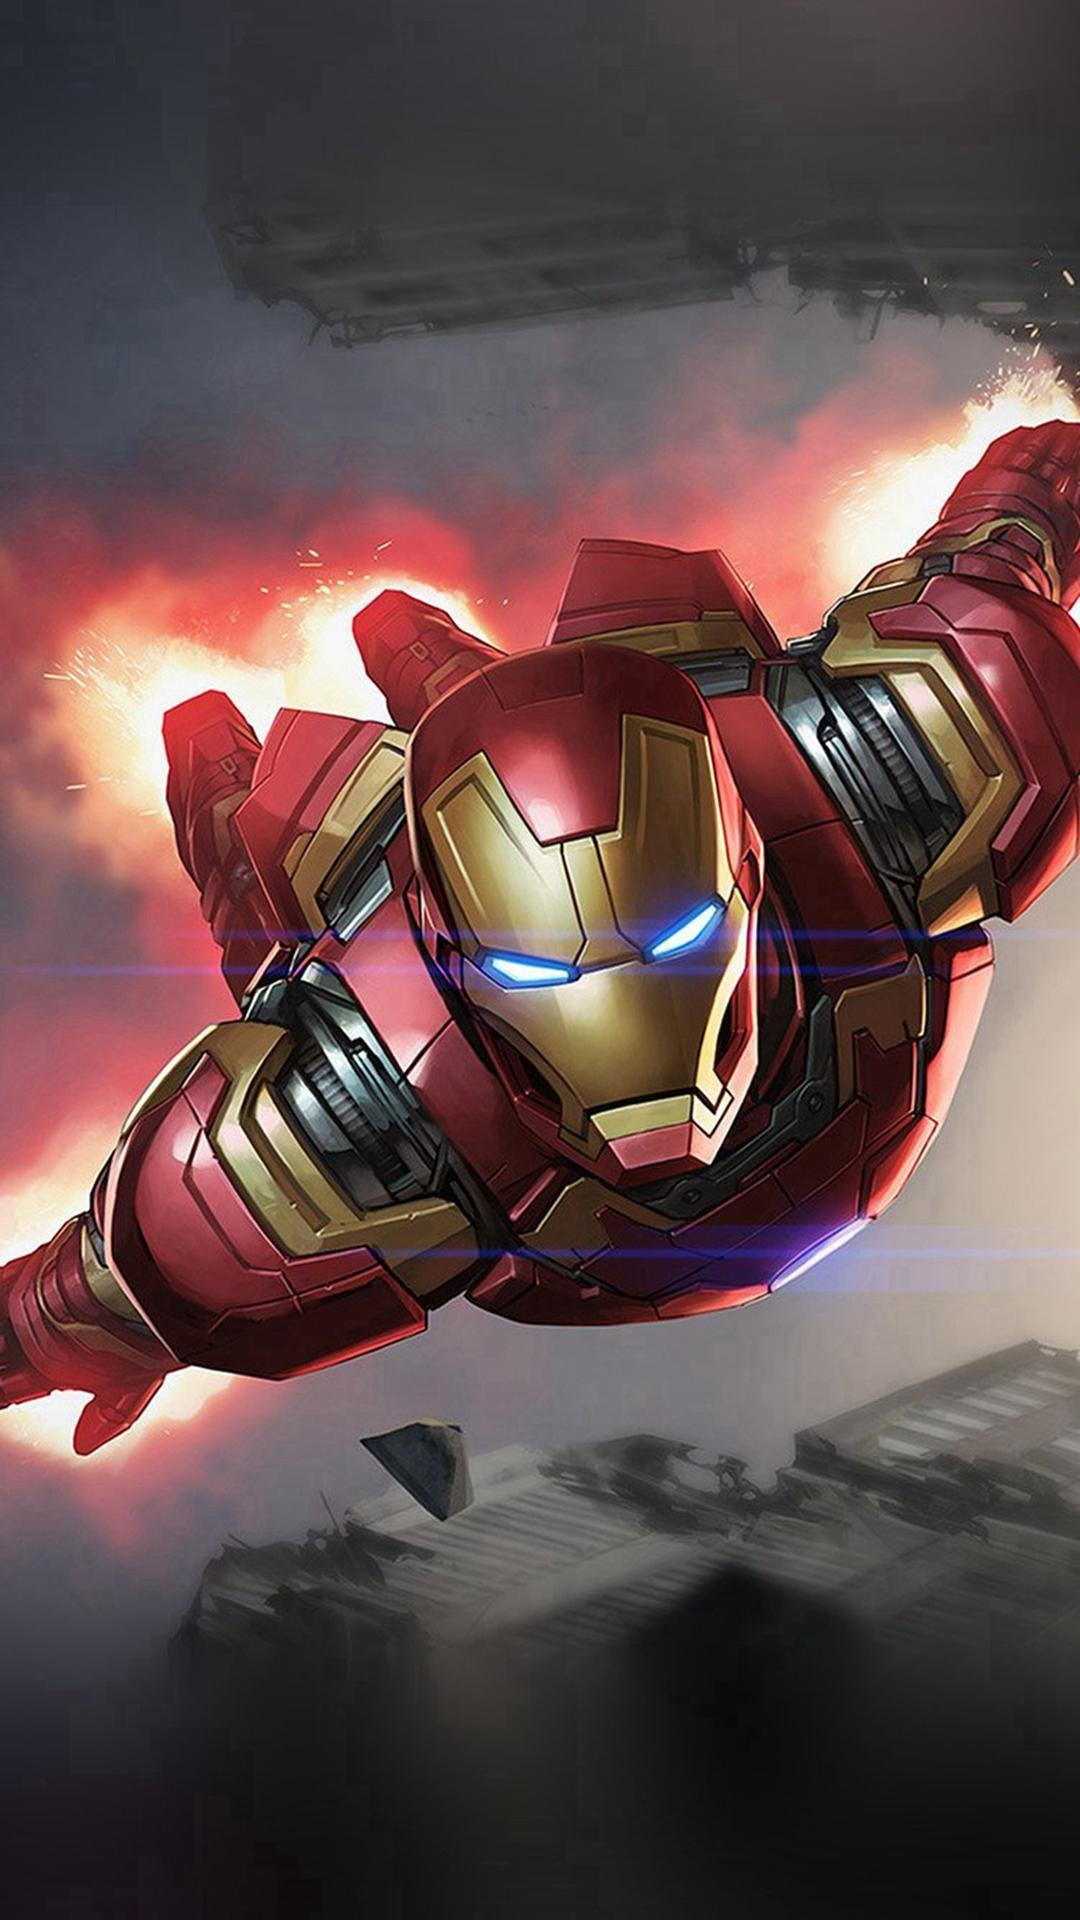 Iron Man Flying iPhone Wallpapers - Wallpaper Cave